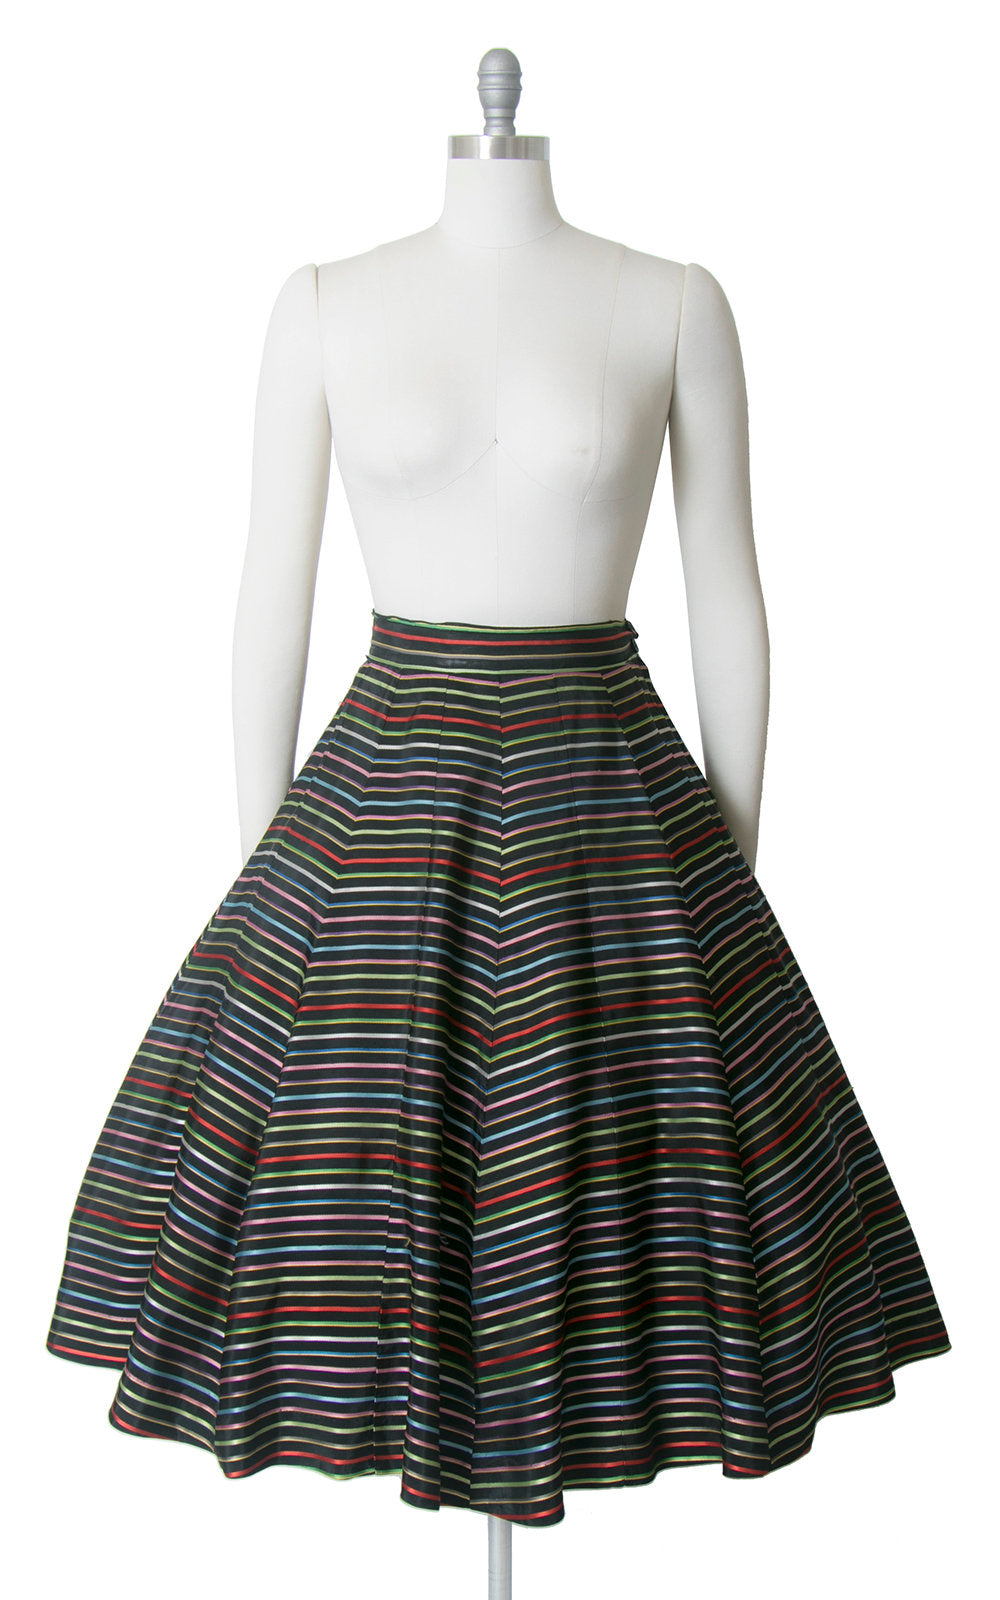 Vintage 1950s Skirt | 50s Rainbow Striped Rayon Taffeta Full Party Skirt (medium)